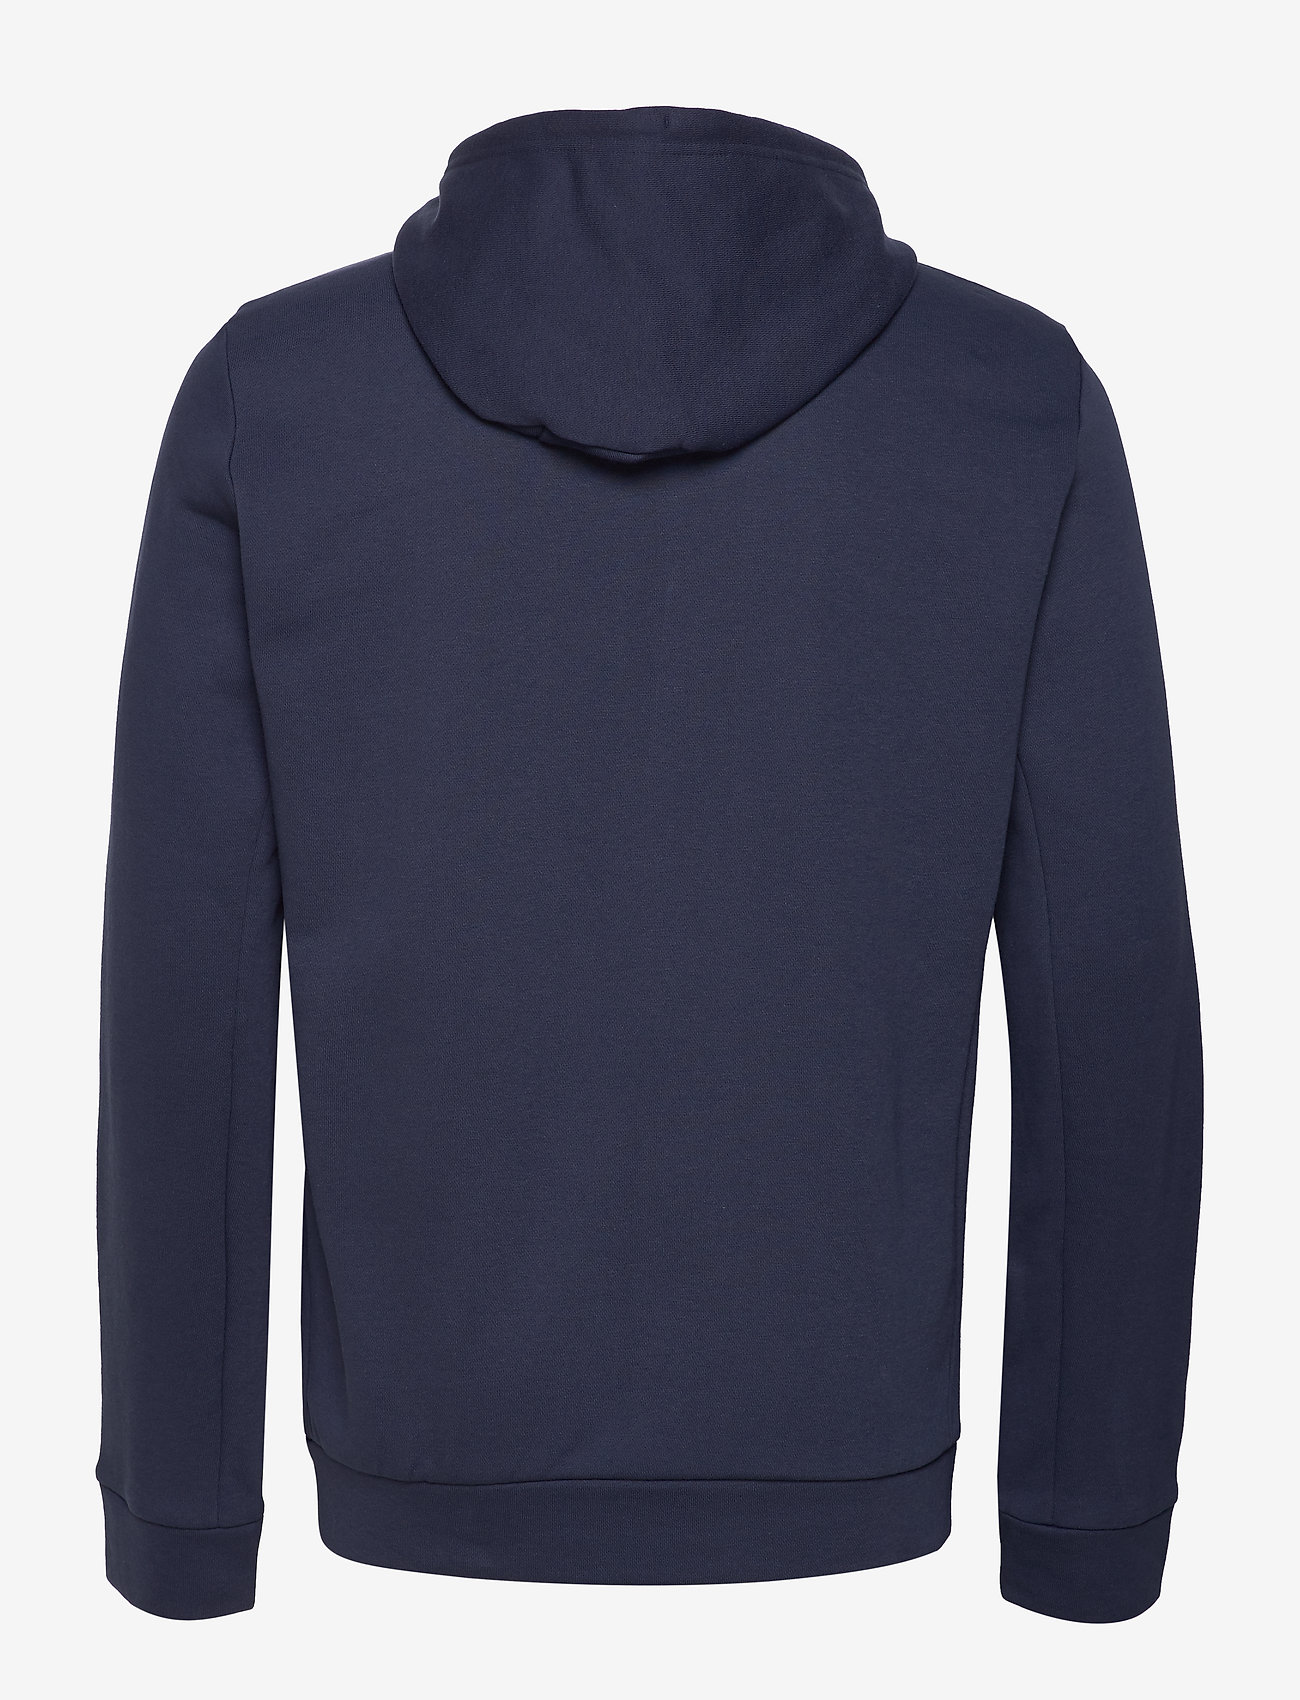 Björn Borg - HOODIE BBCENTRE BBCENTRE - pulls a capuche - peacoat - 1